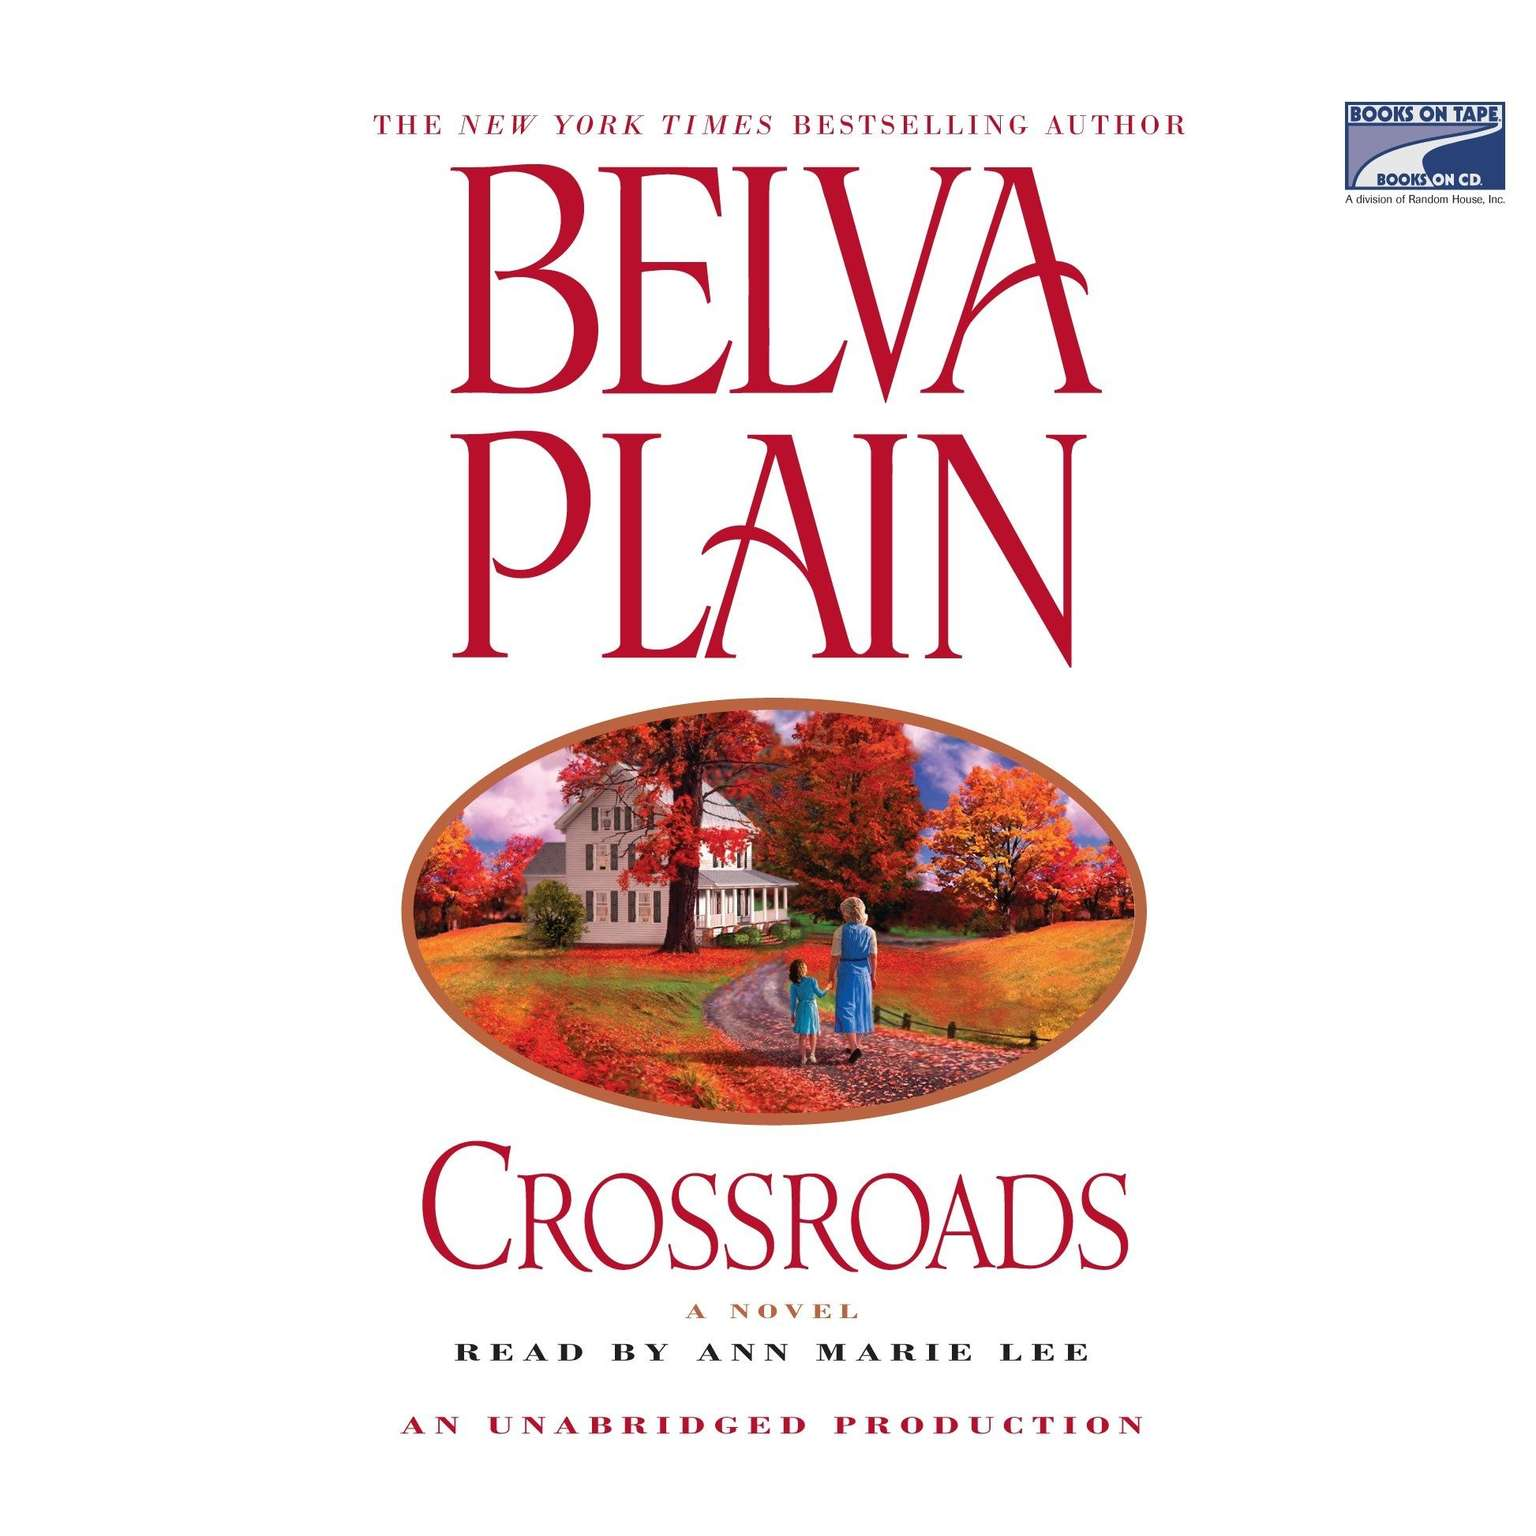 Printable Crossroads Audiobook Cover Art